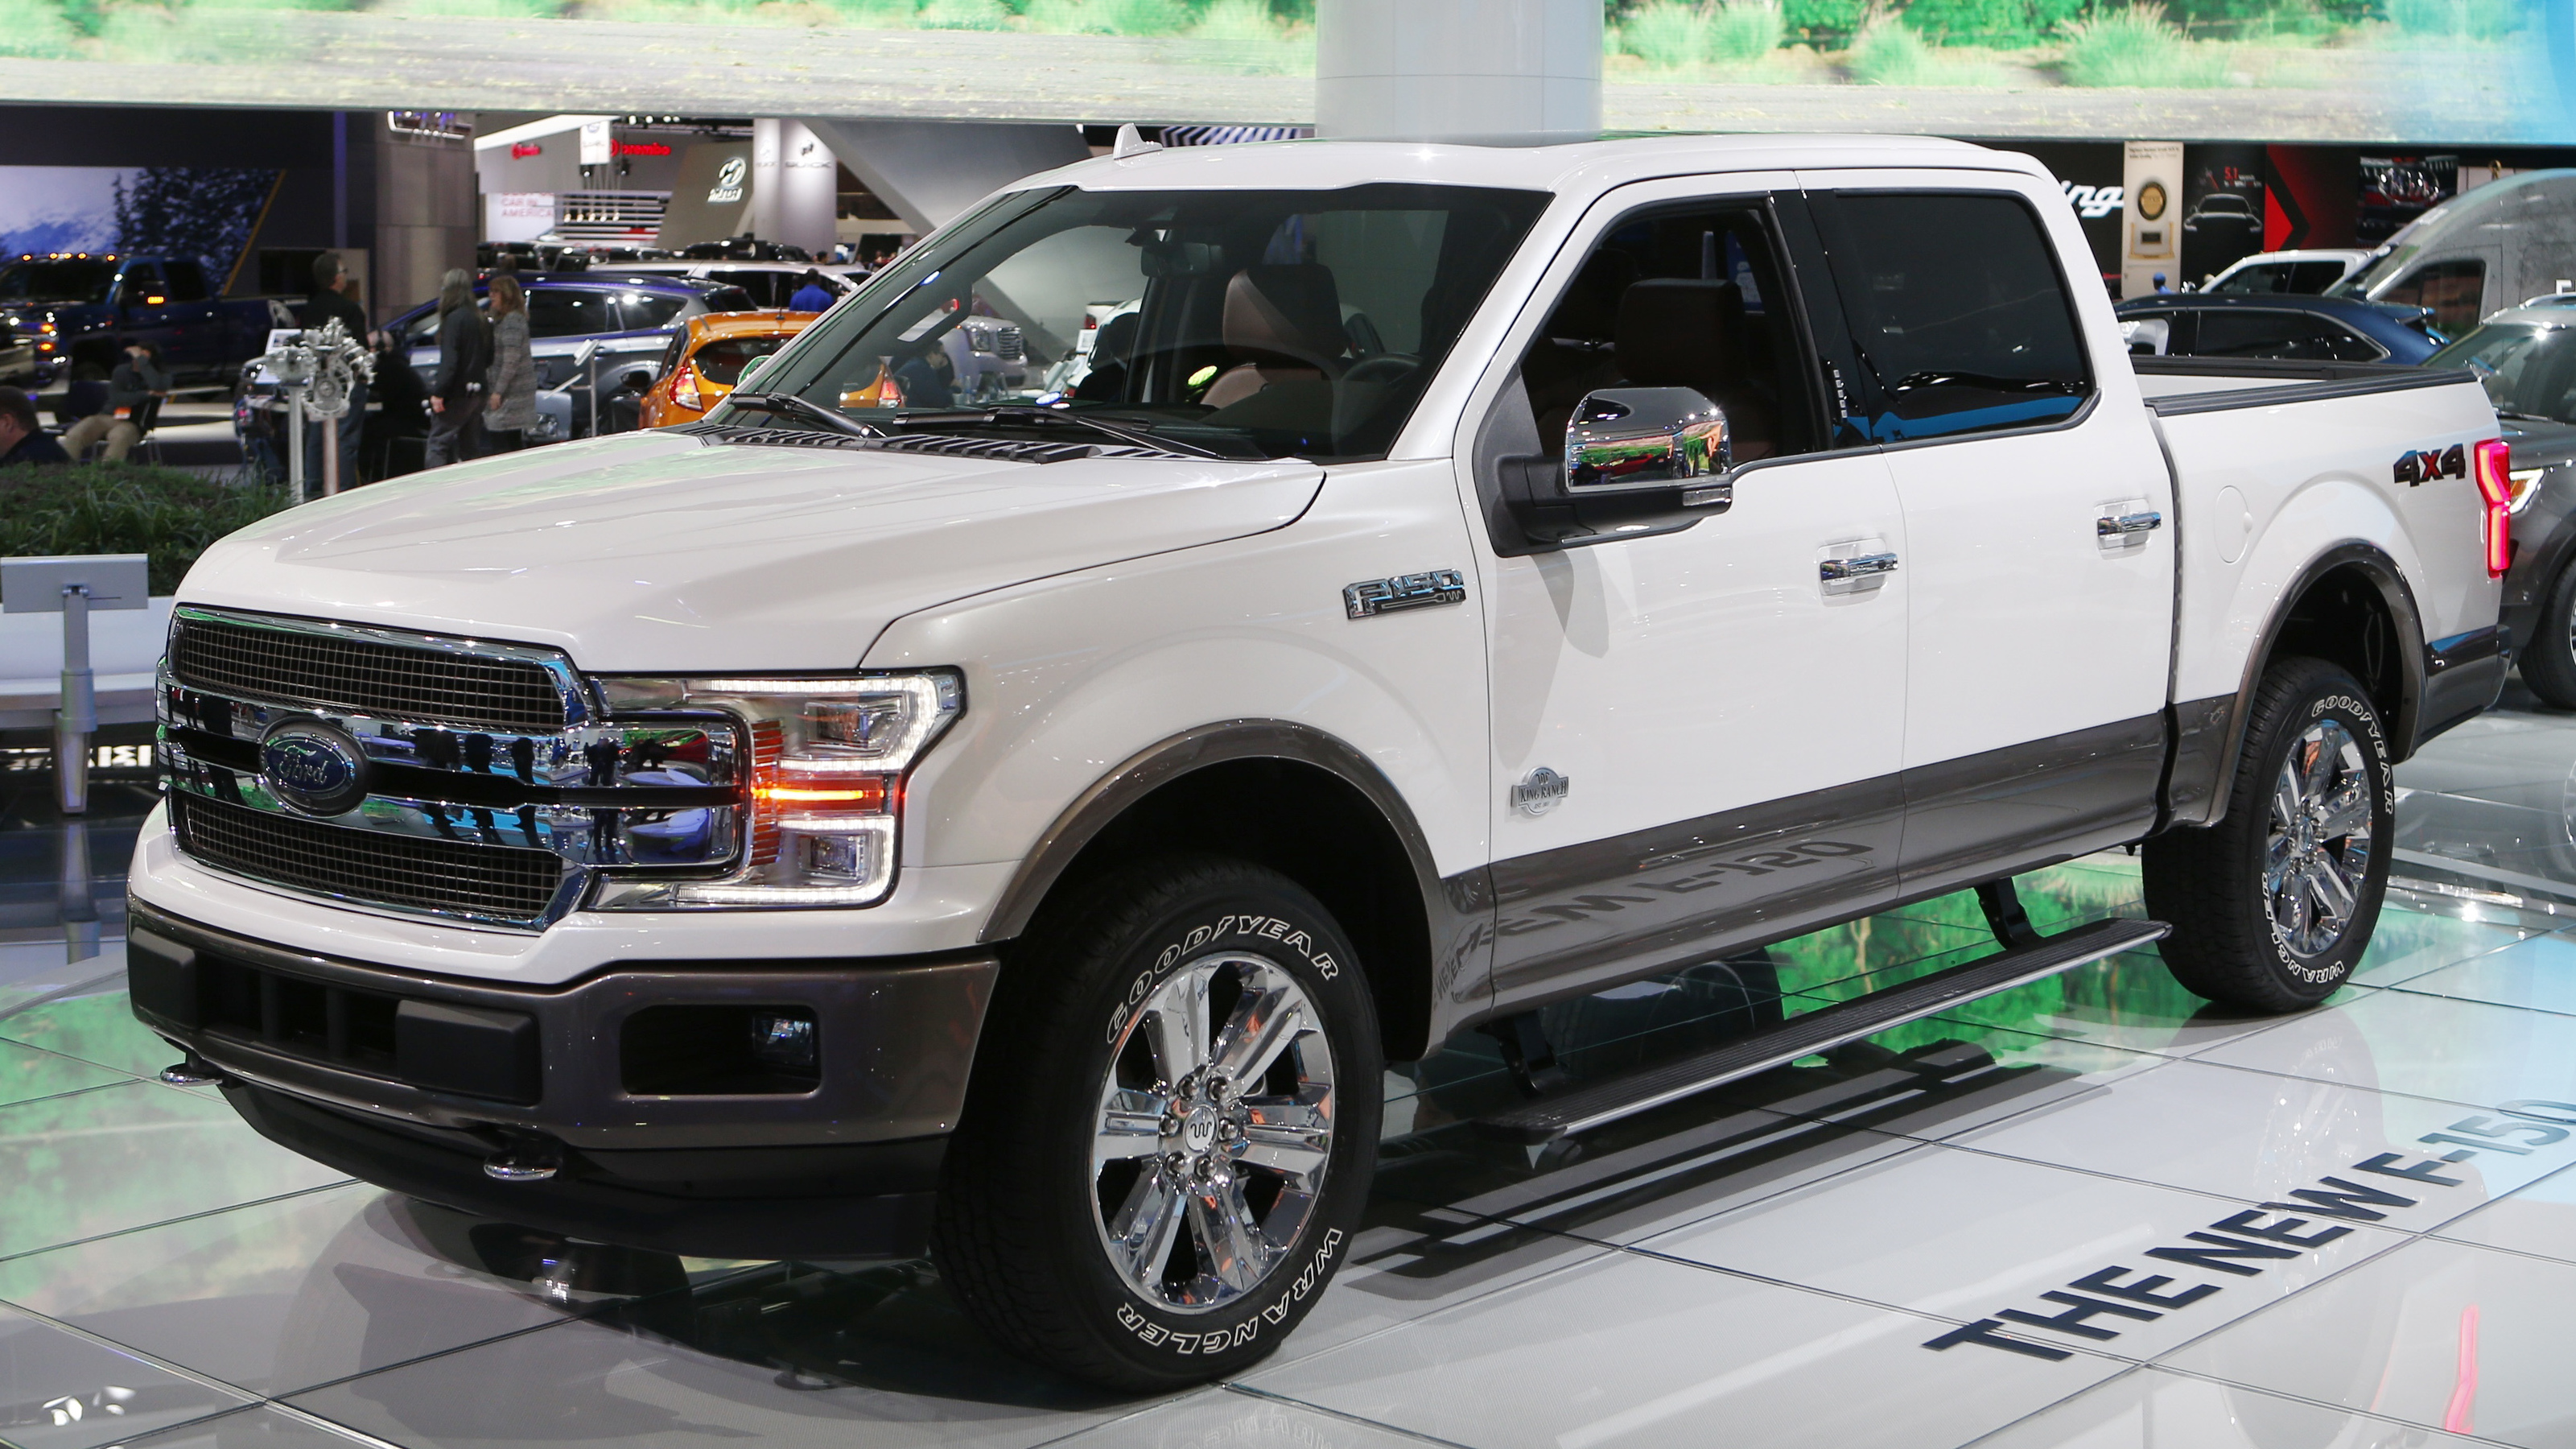 Ford Recall 2018: F-150, Expeditions Could Roll When Parked